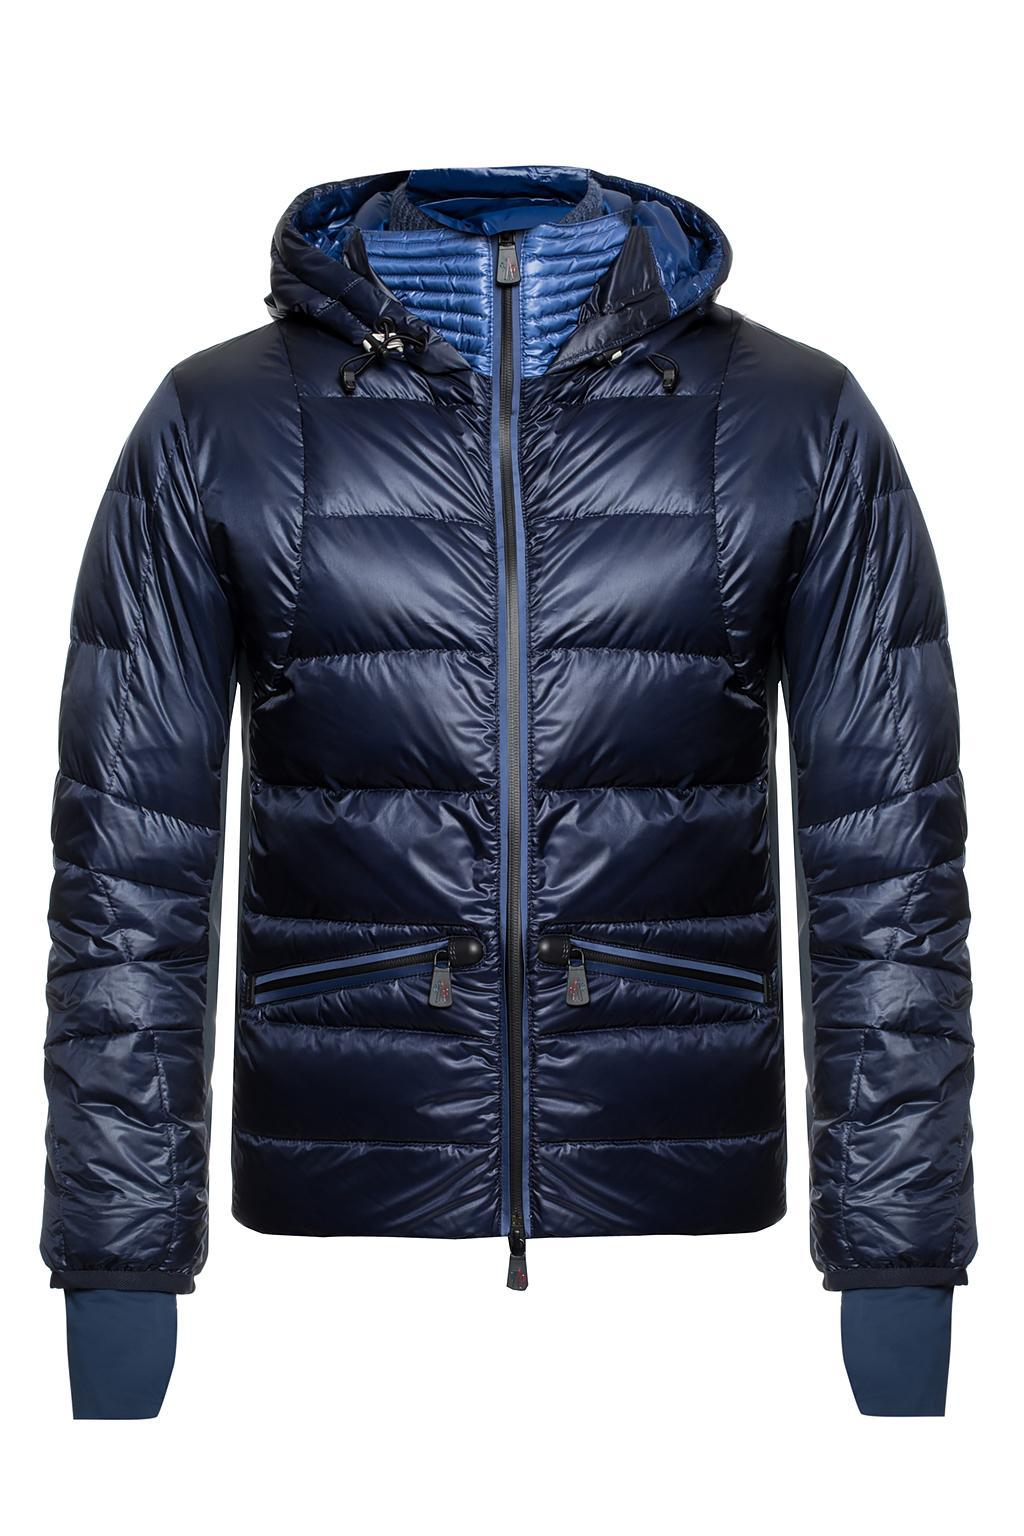 3869eab1f46a6 Lyst - Moncler Grenoble Hooded Down Jacket in Blue for Men